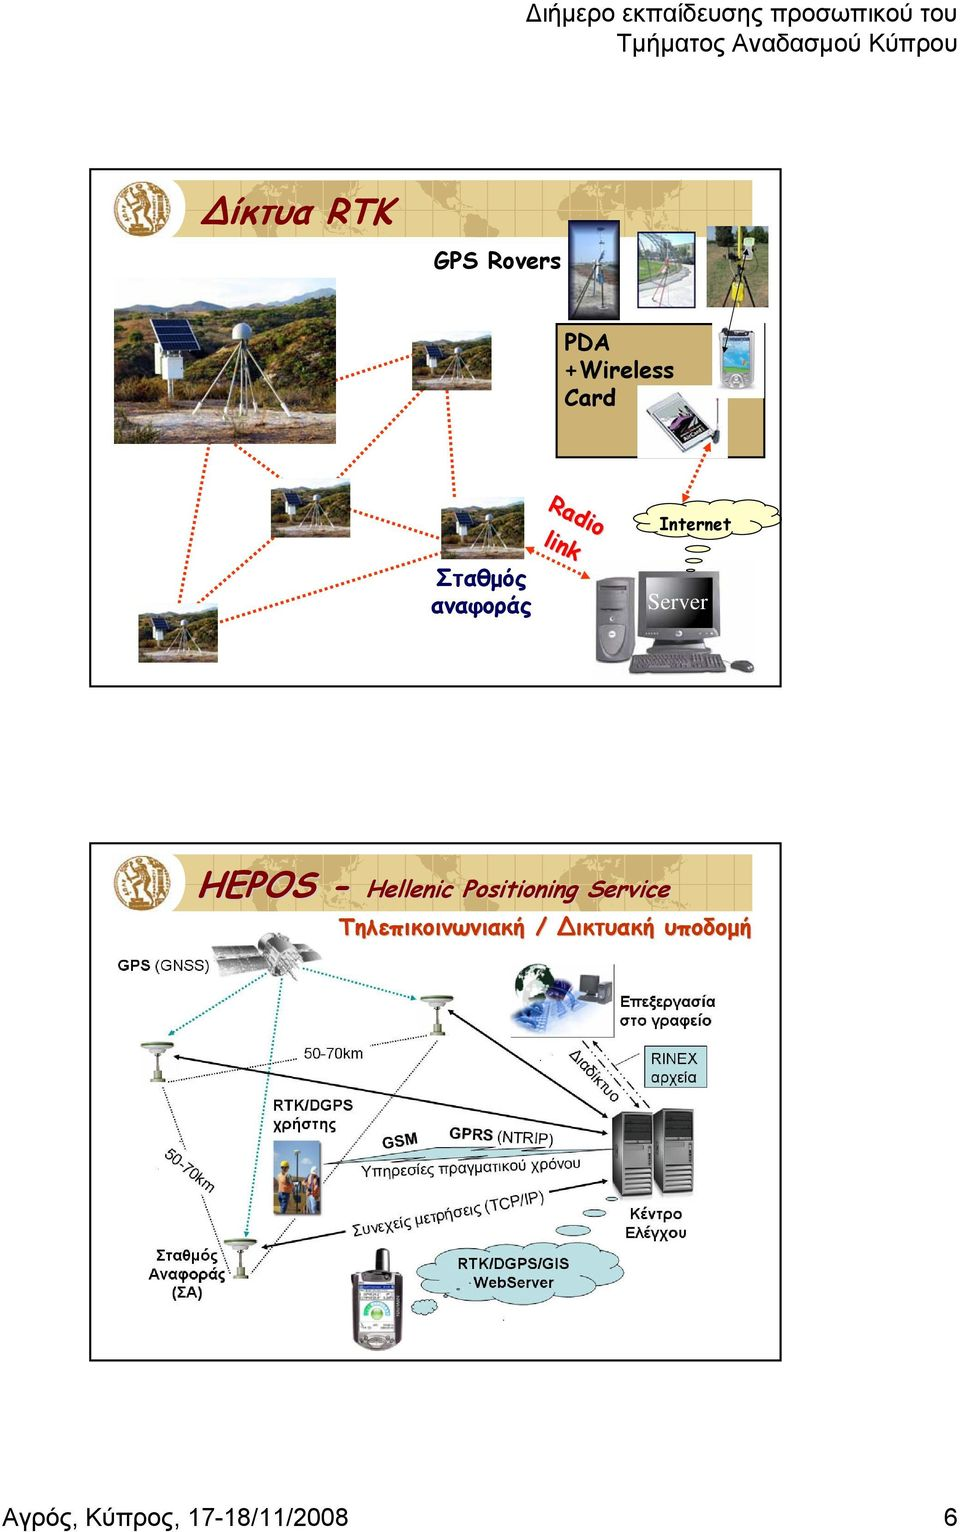 HEPOS - Hellenic Positioning Service